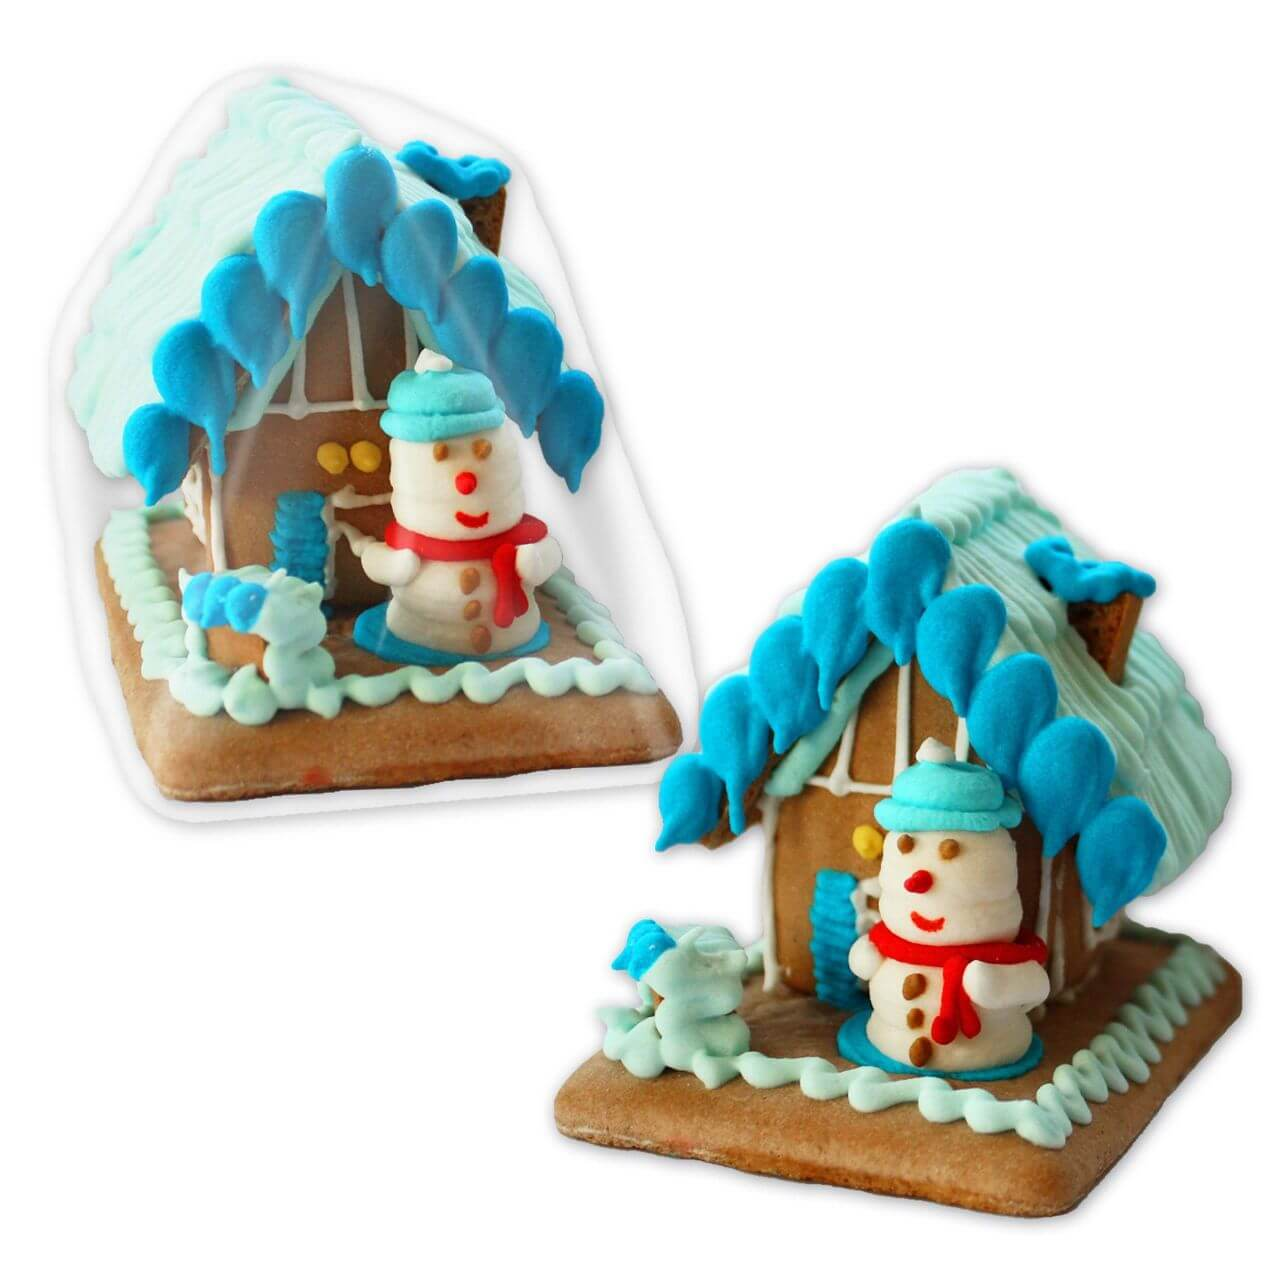 Gingerbread house, Snowman